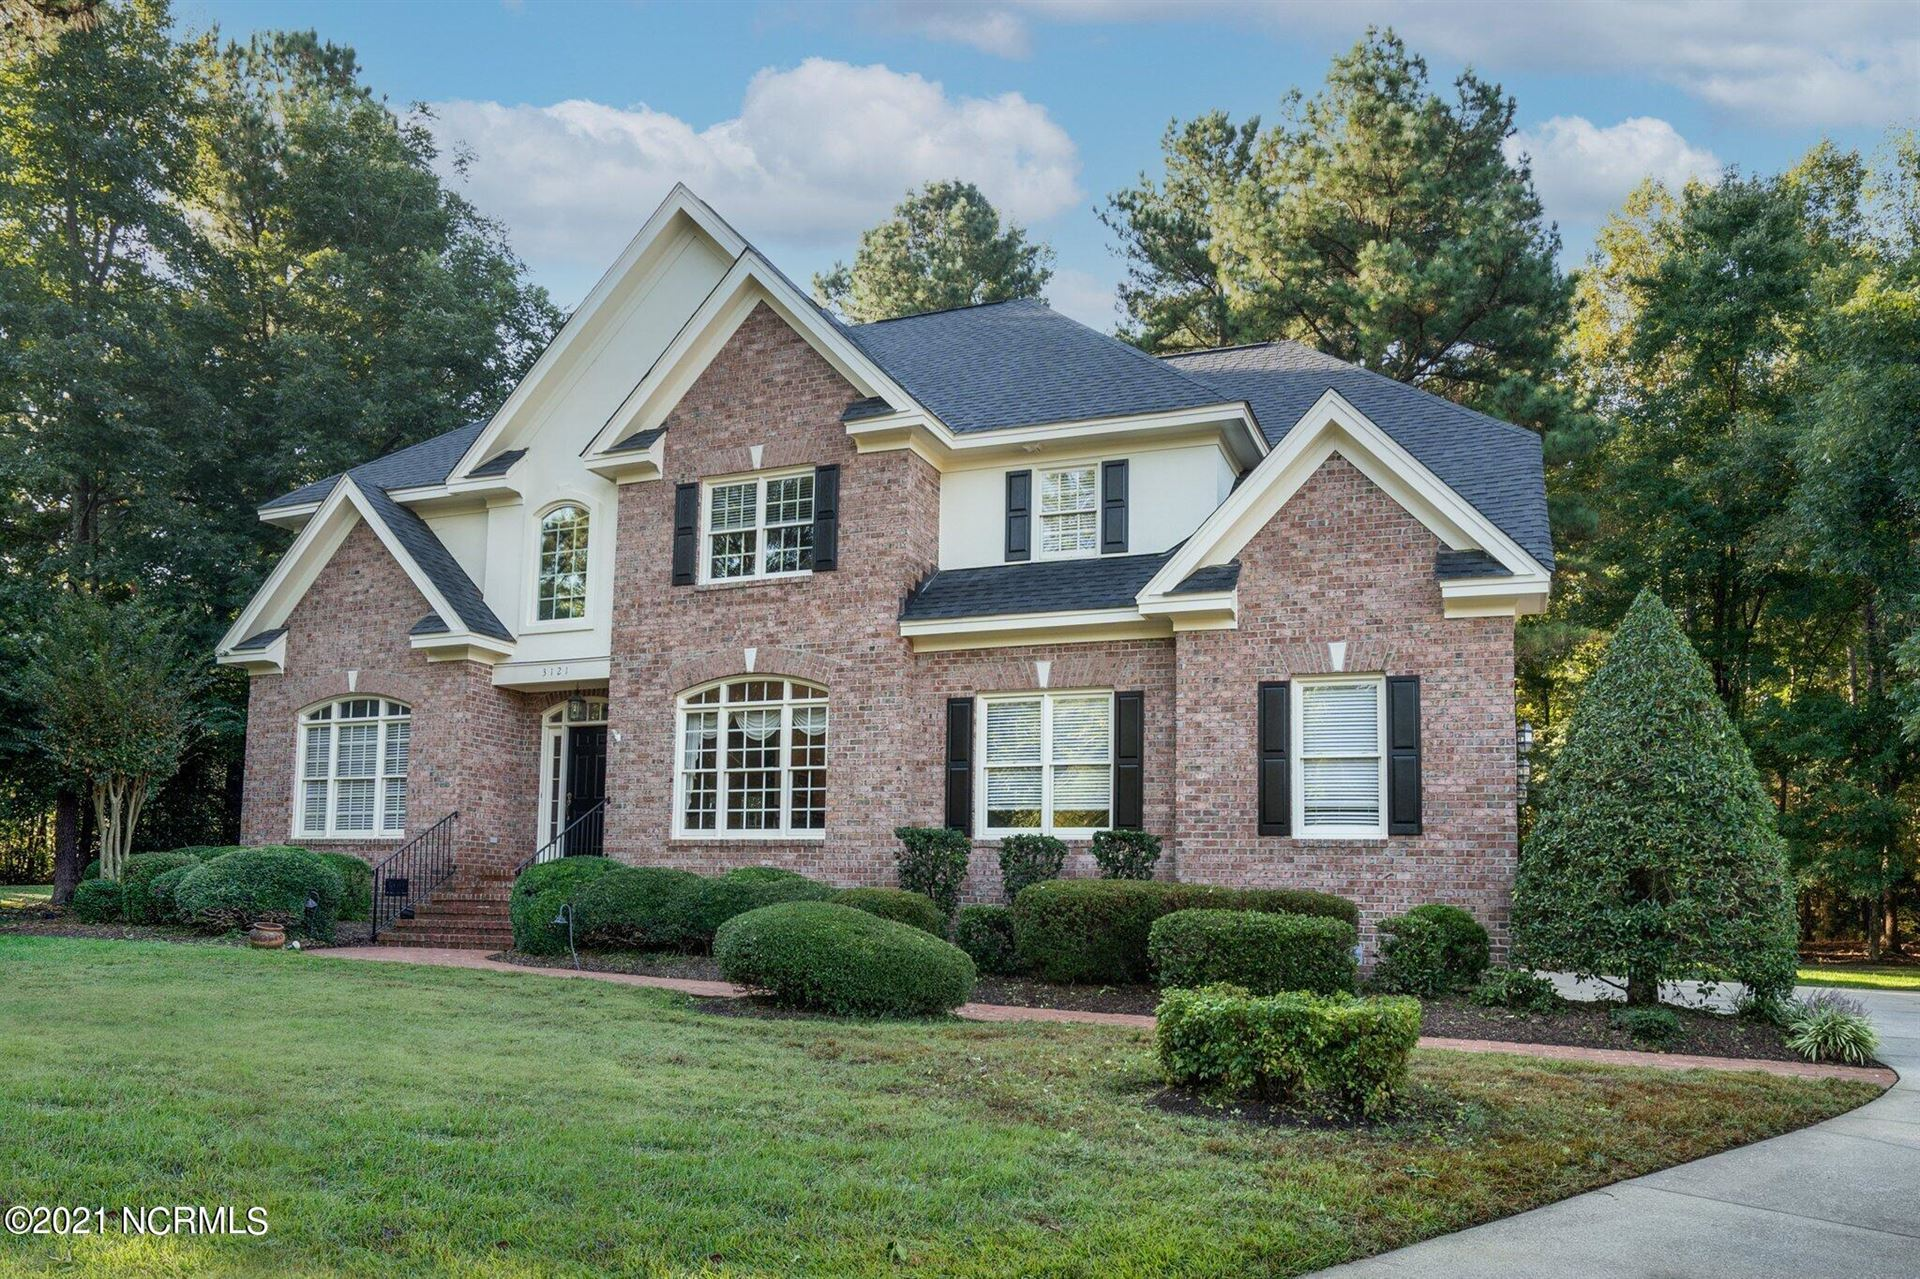 Photo of 3121 Lakepointe Trail, Rocky Mount, NC 27804 (MLS # 100292914)